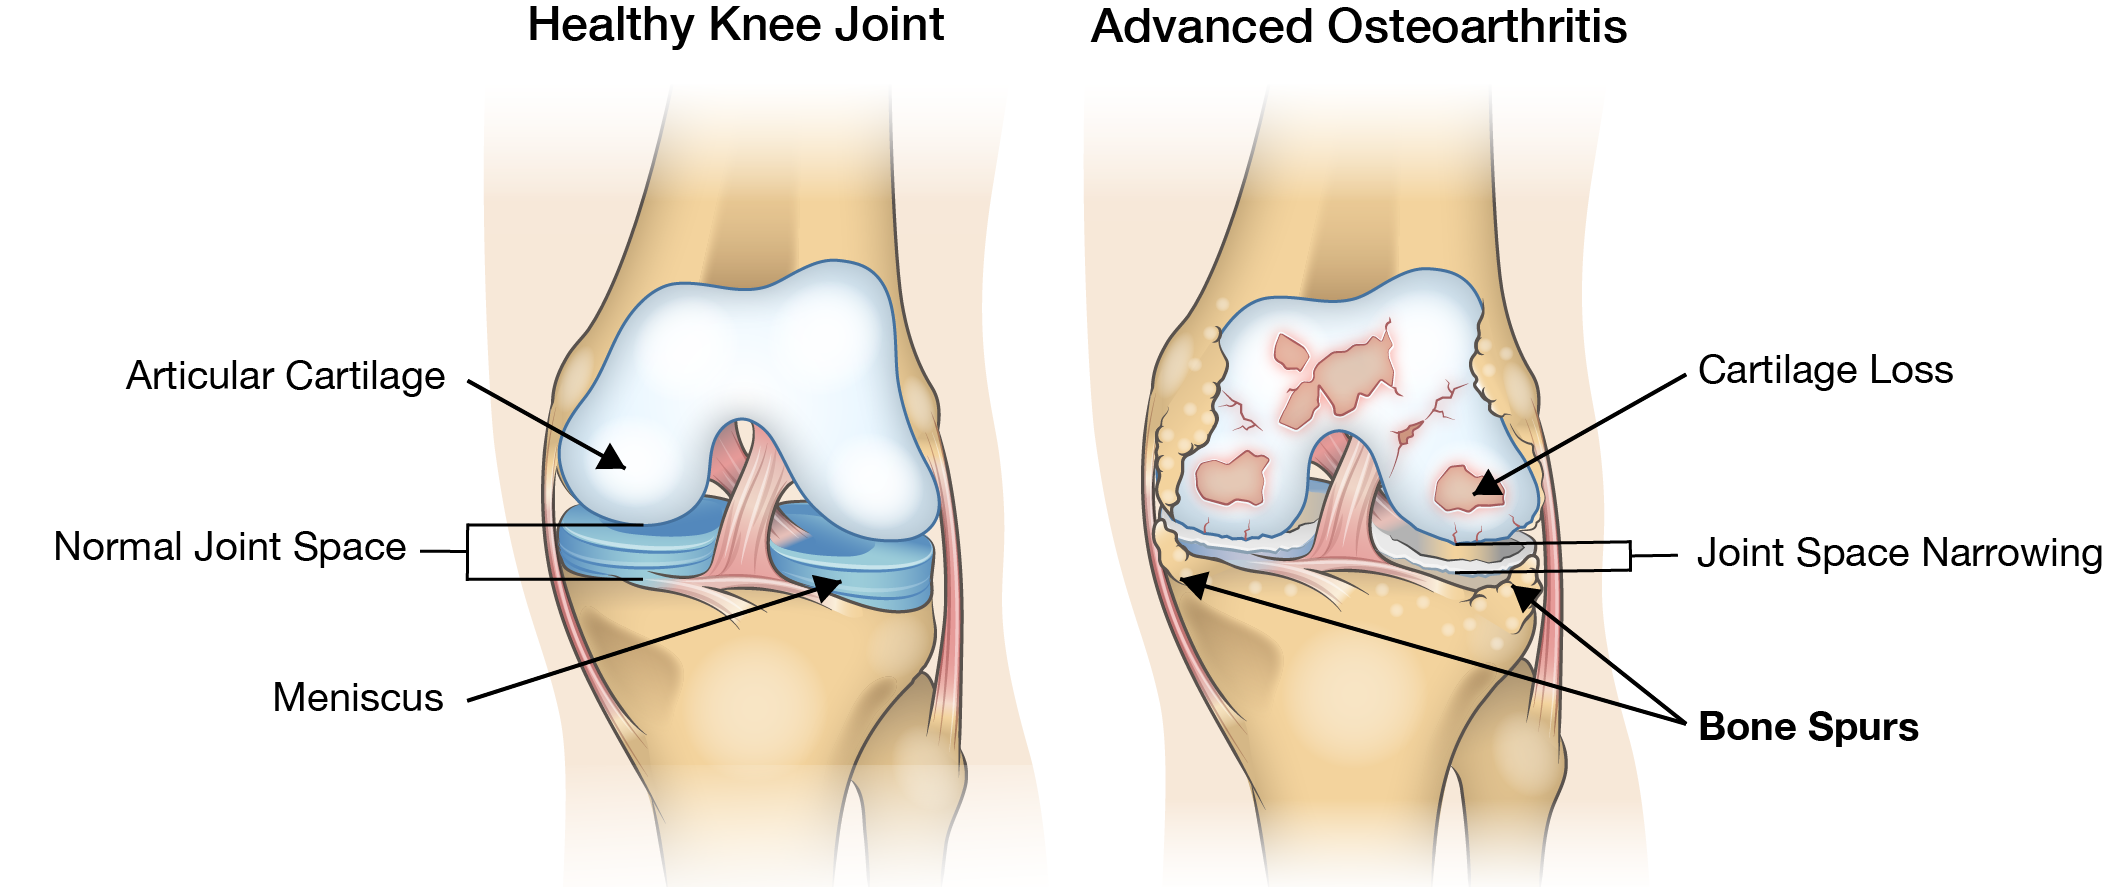 Guide to Severe Knee Arthritis (Osteoarthritis) - Spring ... on knee injuries, knee schematic, knee articular cartilage, medial collateral ligament, knee brace patellar tendon strap, knee cap popped out of place, knee bones, knee arthritis symptoms, medial meniscus, knee and leg tendons, sacroiliac joint, knee pain, posterior cruciate ligament, hinge joint, knee patella, knee drawing, knee exercises, anterior cruciate ligament injury, knee high heels, knee biology, knee osteoarthritis, knee flexion and extension, synovial joint, knee bursa, knee model, knee movements, knee arthroscopy, knee structure, knee outline, anterior cruciate ligament,